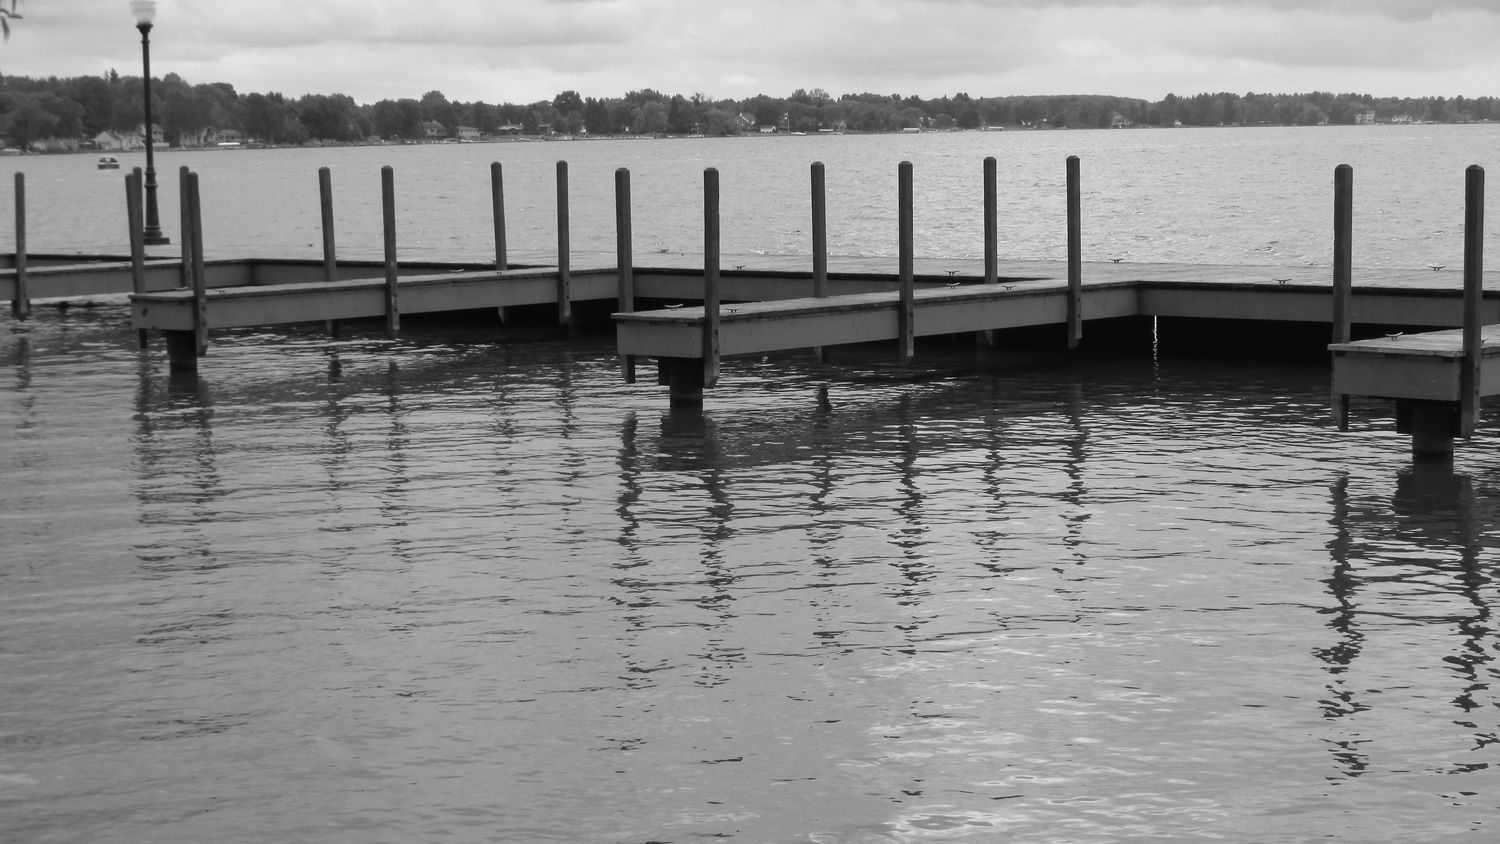 Hanging Out Lake Cadillac On The Docks Taking Photos Black And White Photography Water Reflections Pure Michigan